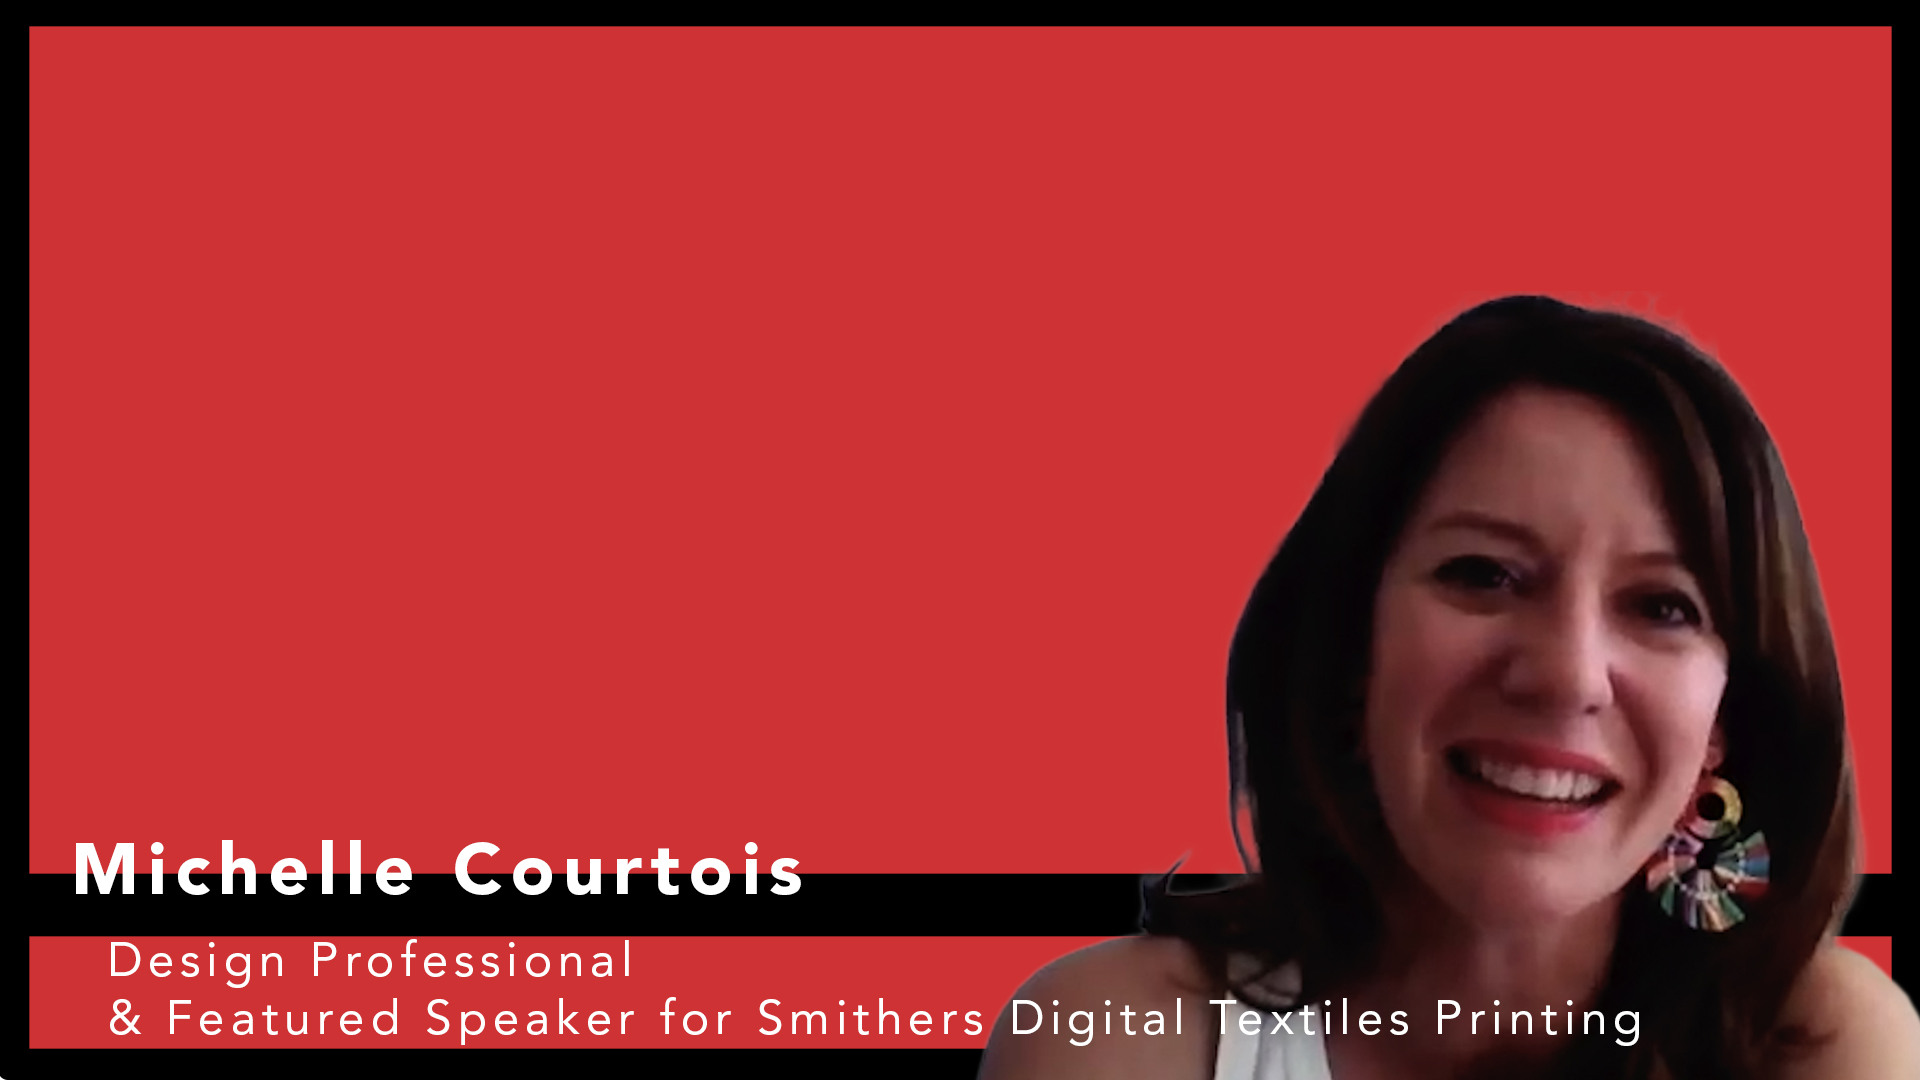 Video preview: Home Decor to Take Center Stage at Smithers Digital Print For Textiles